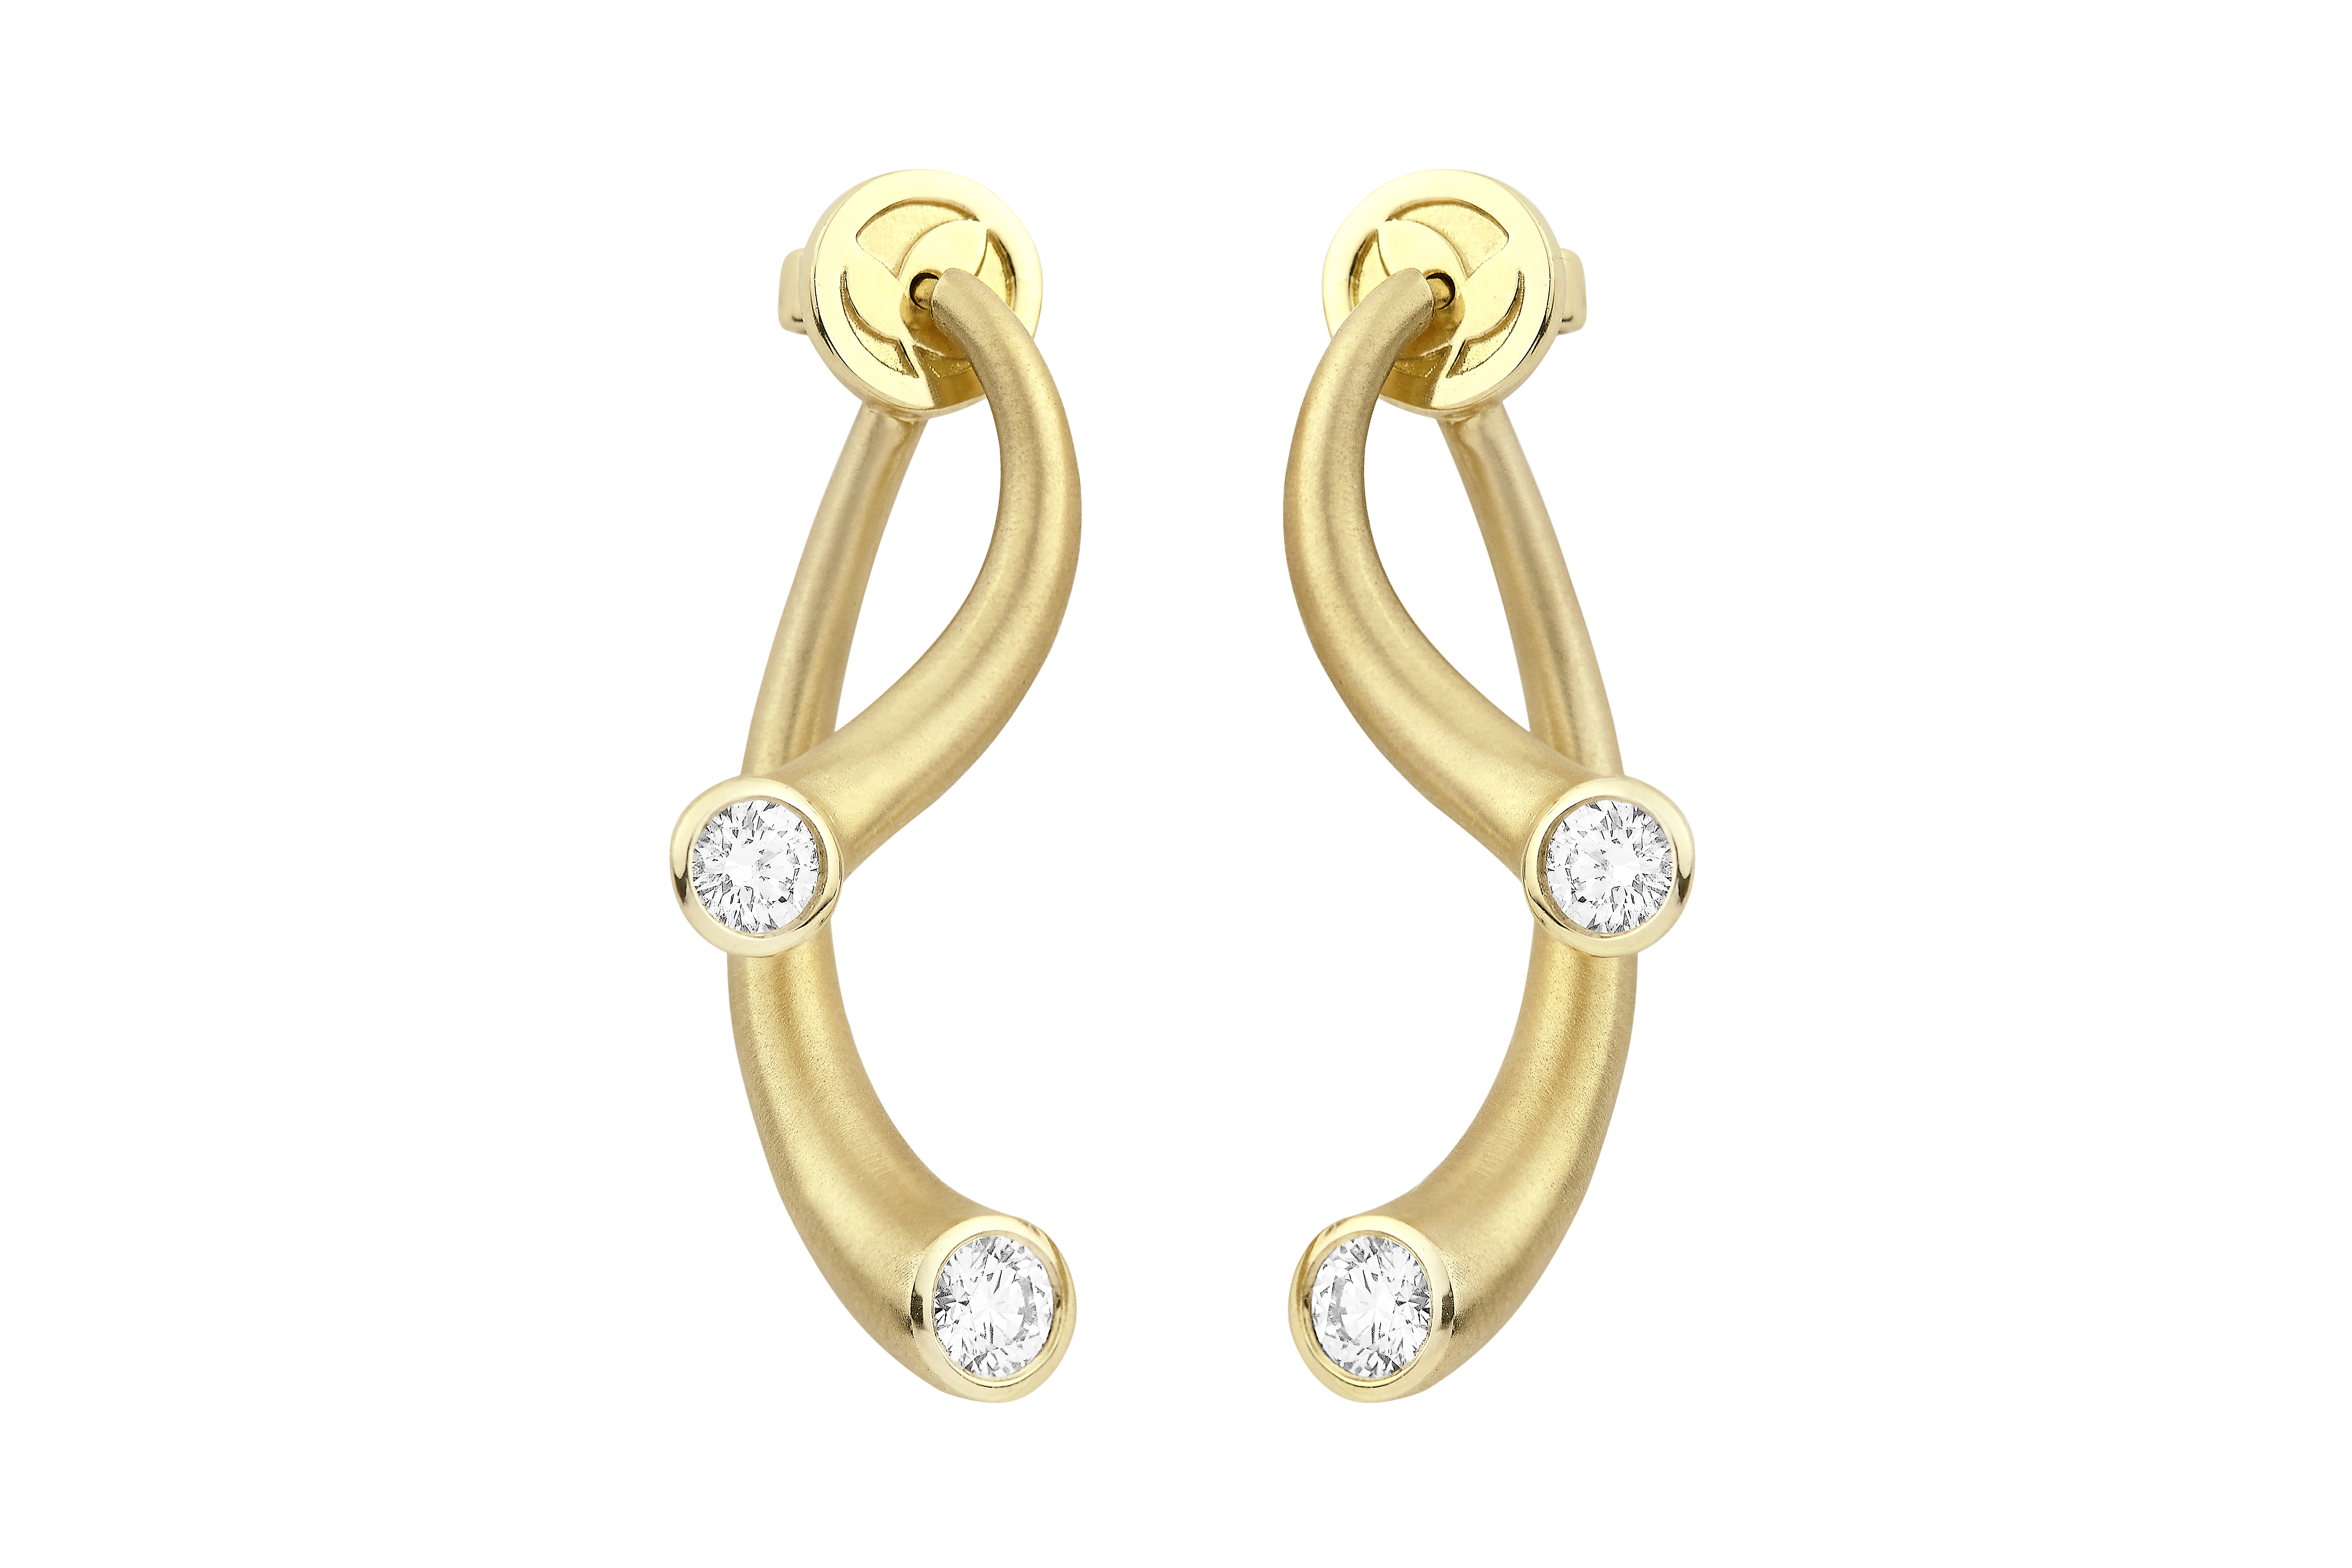 18-karat Yellow Gold 3-Way Diamond Earrings